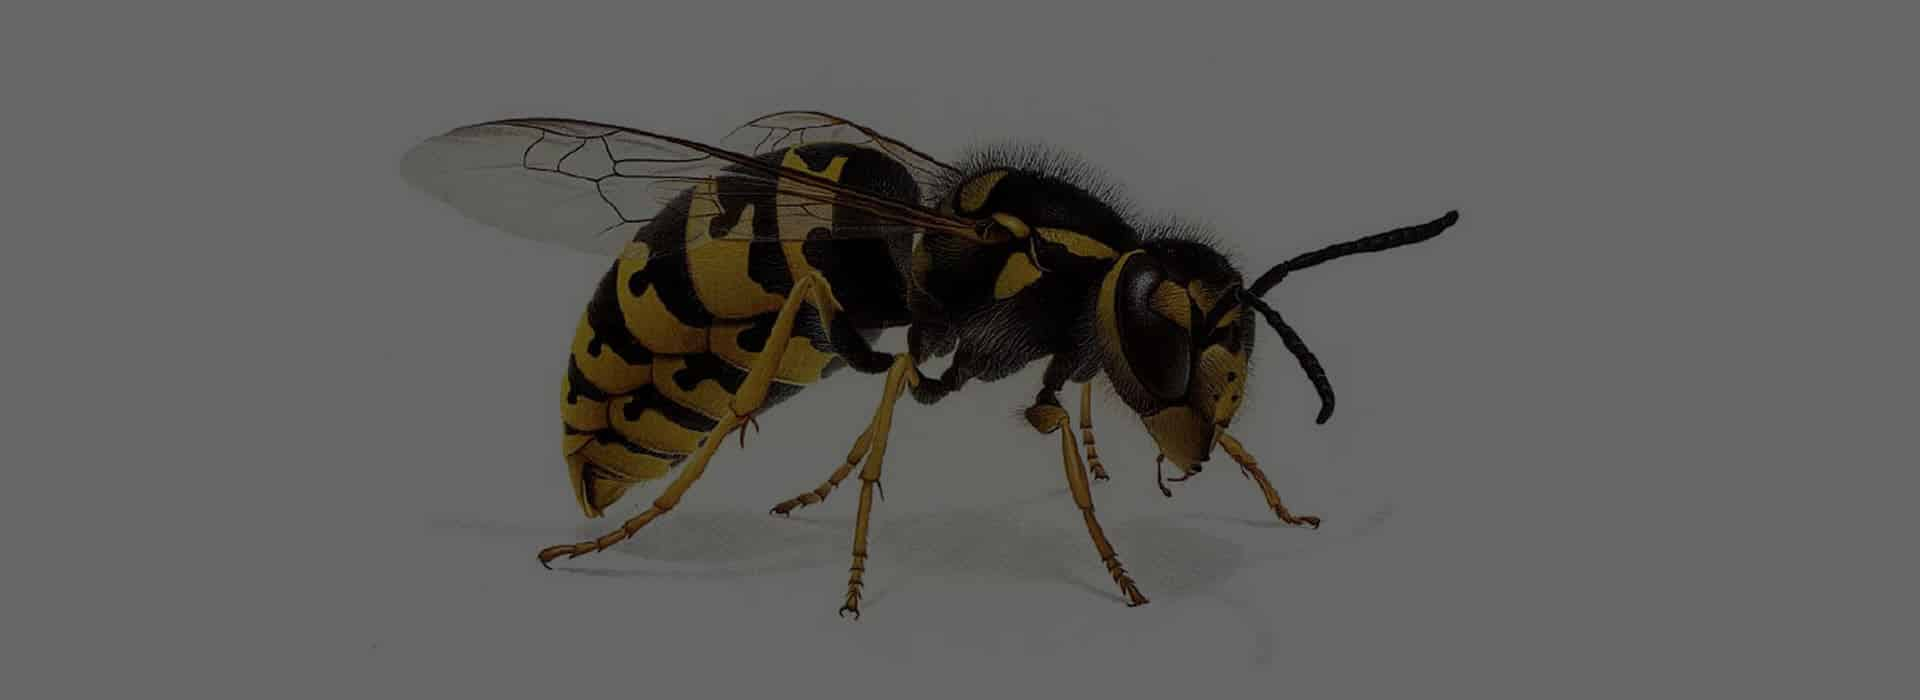 Pest-Control-Lowton-Wasp-Nest-Removal